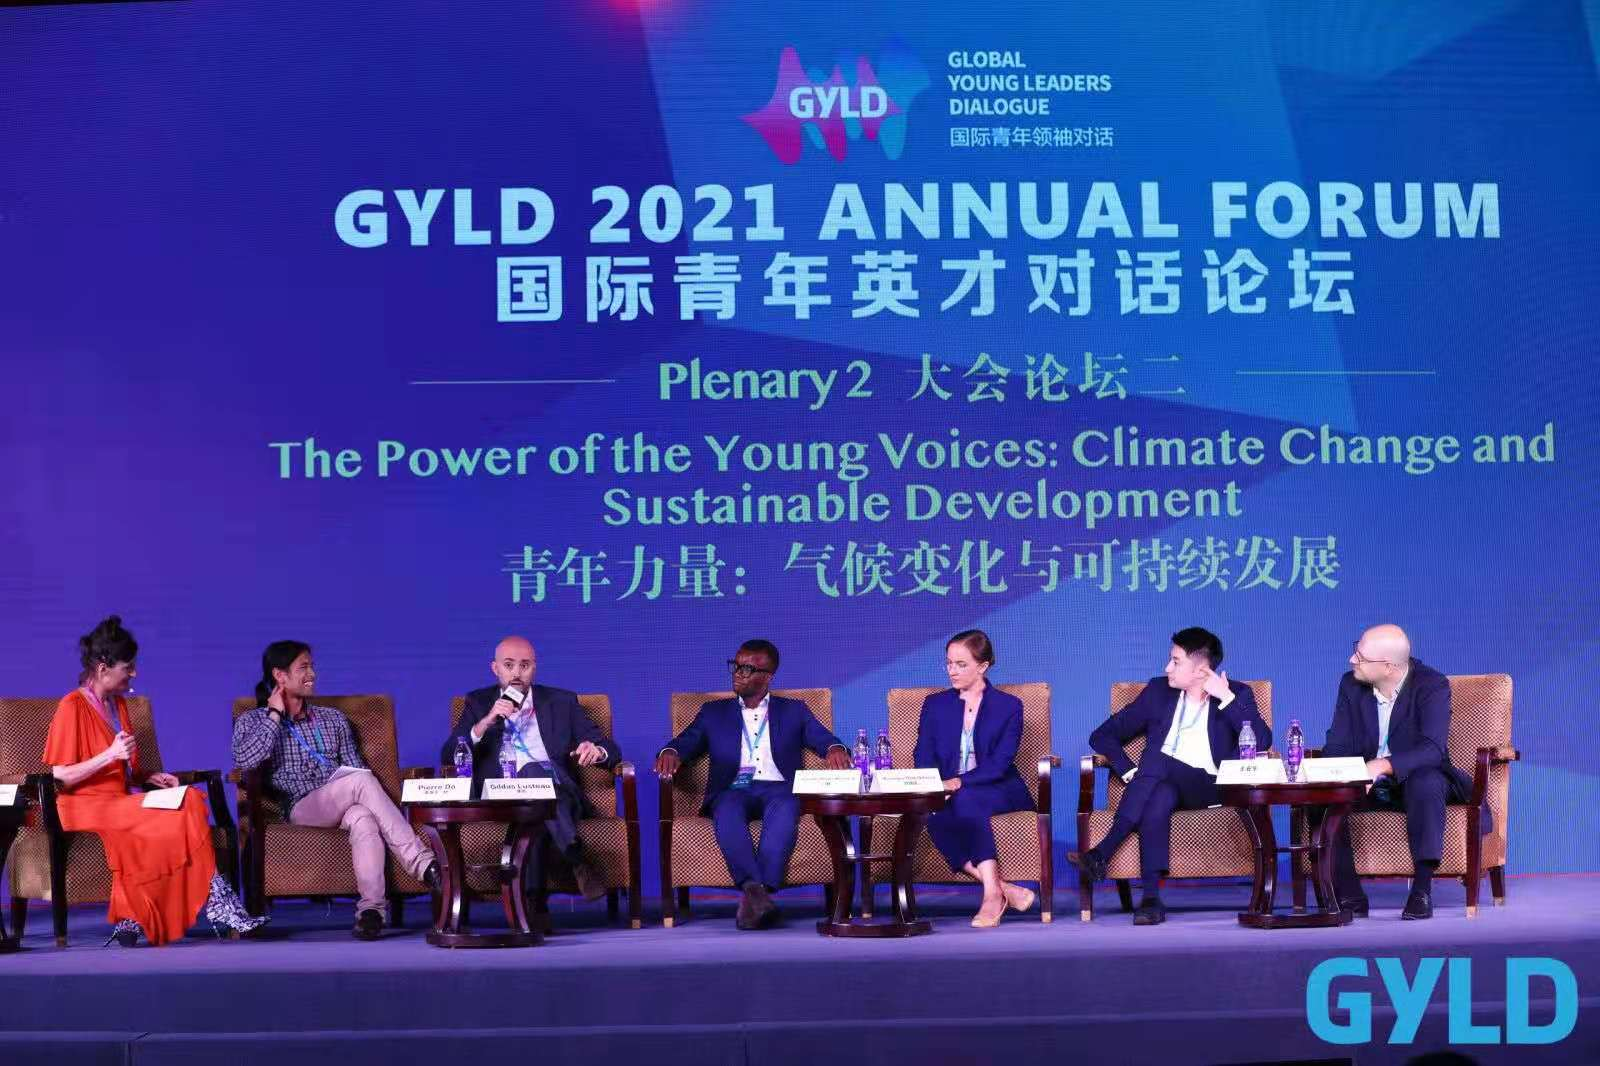 GYLD 2021 Annual Forum | Plenary 2: The Power of the Young Voices: Climate Change and Sustainable Development